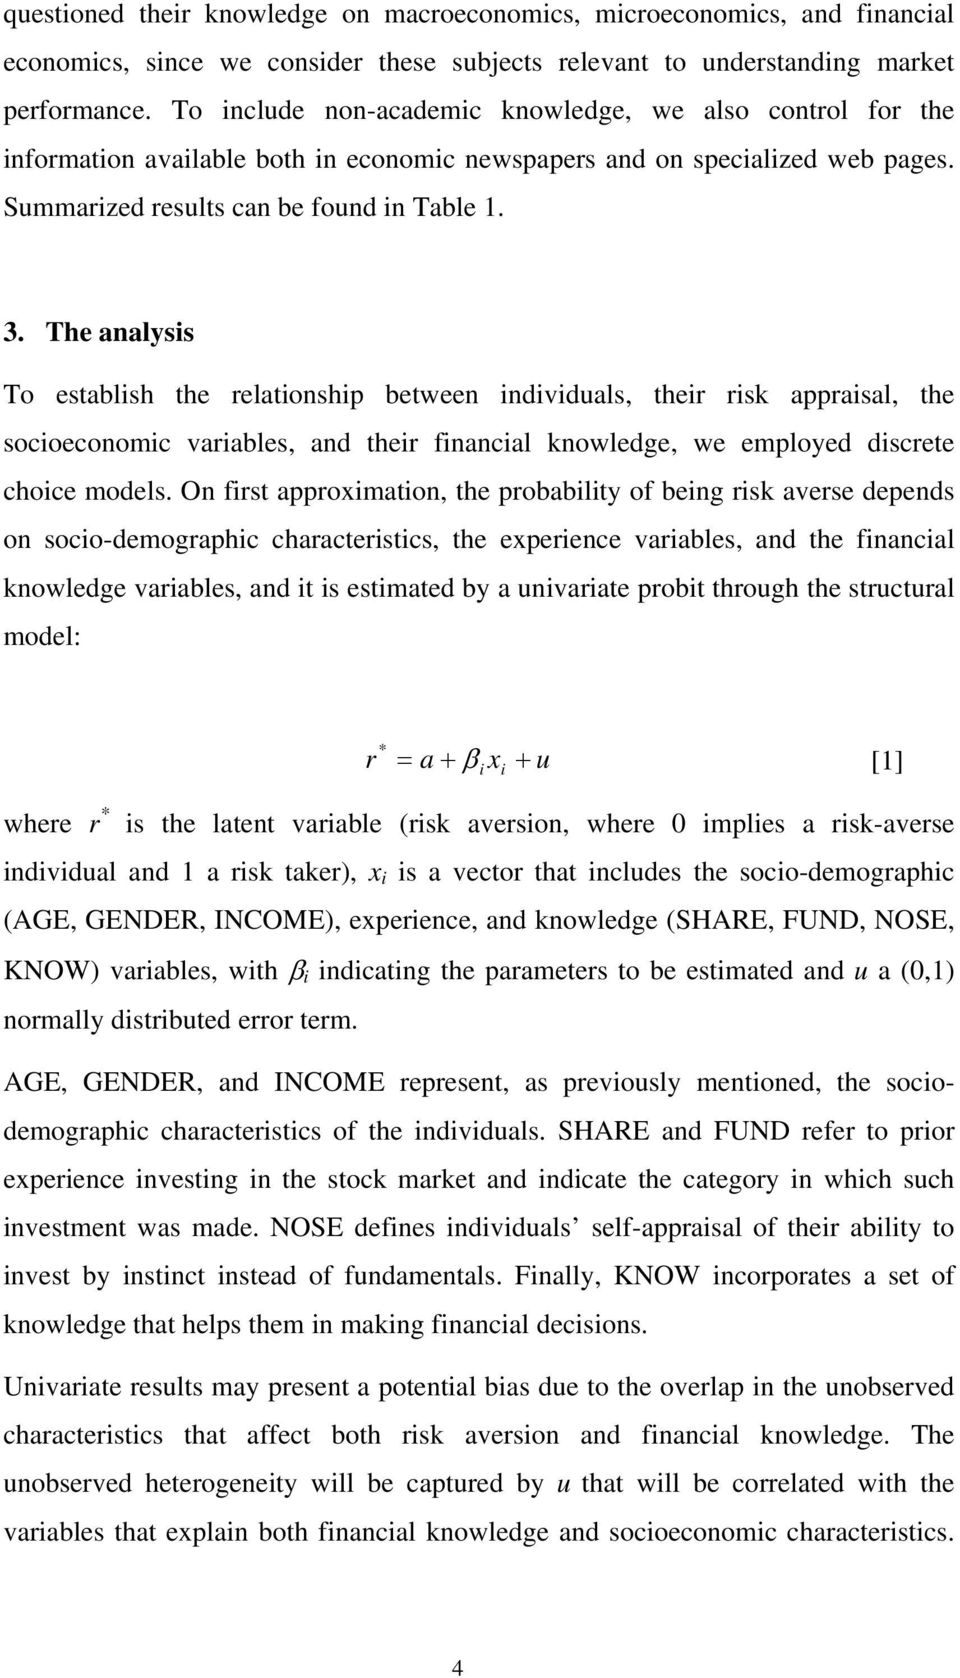 The analysis To establish the relationship between individuals, their risk appraisal, the socioeconomic variables, and their financial knowledge, we employed discrete choice models.